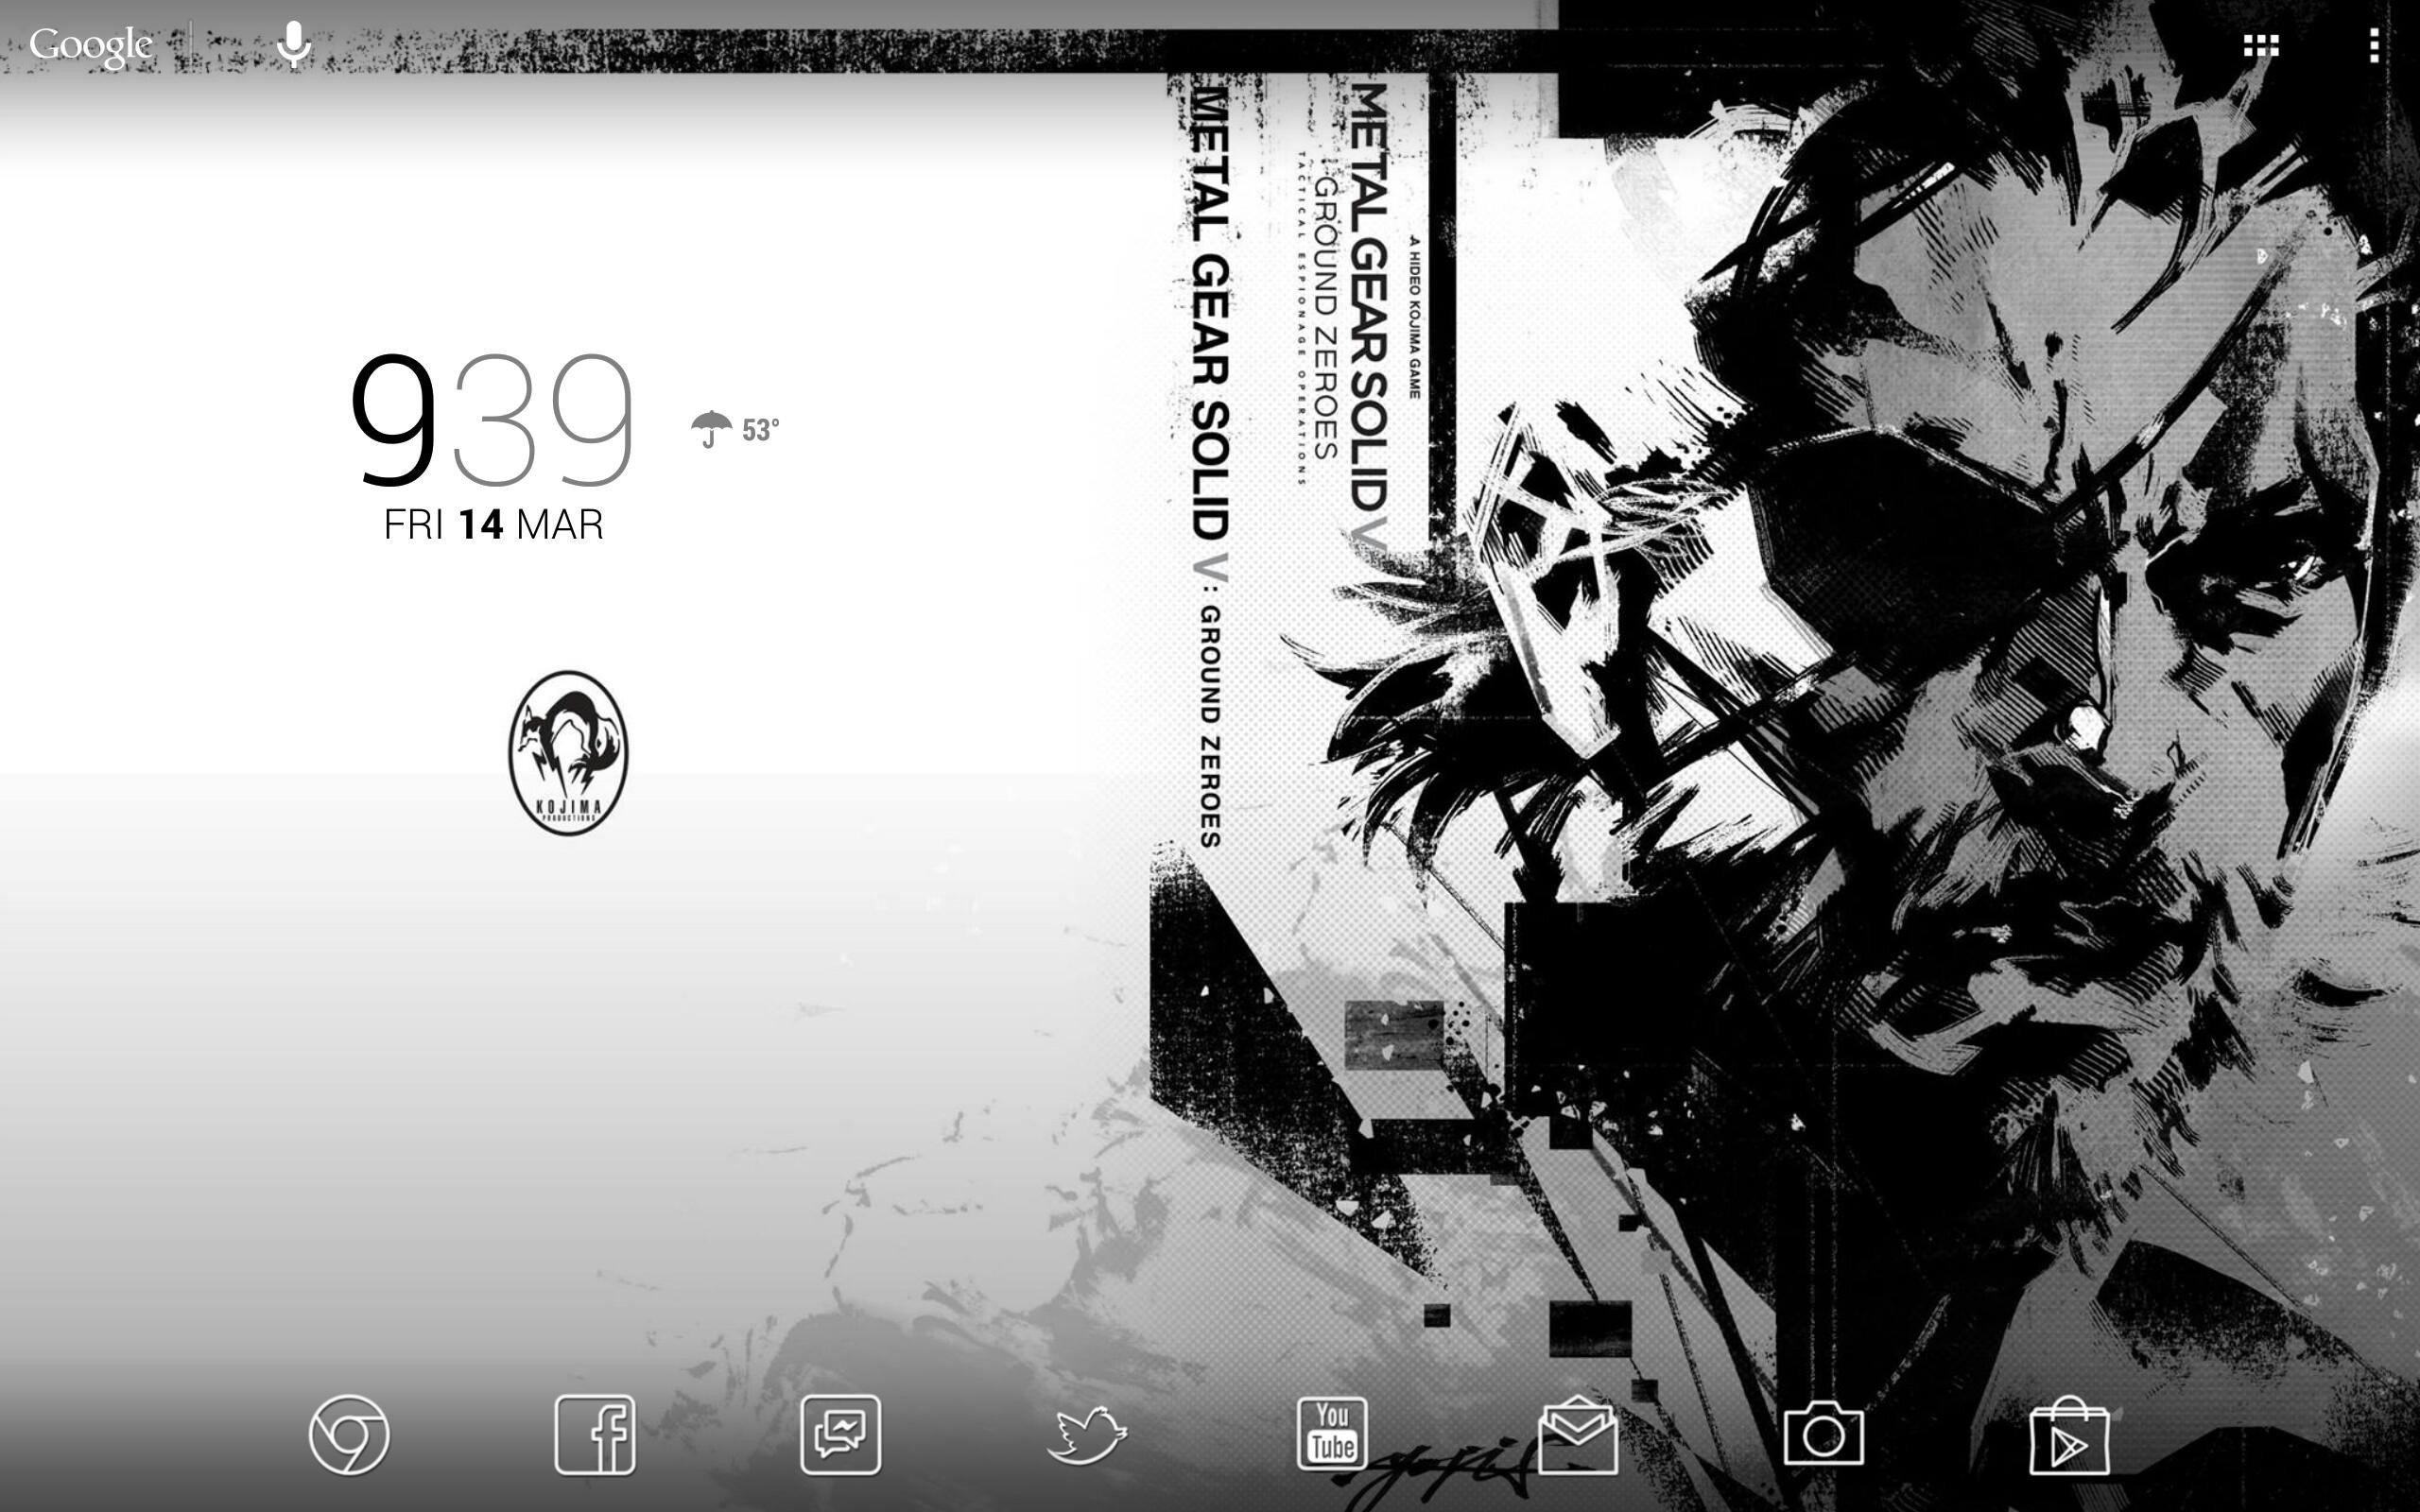 Thanks man :D Makes a kick-ass background for my Galaxy Tab.